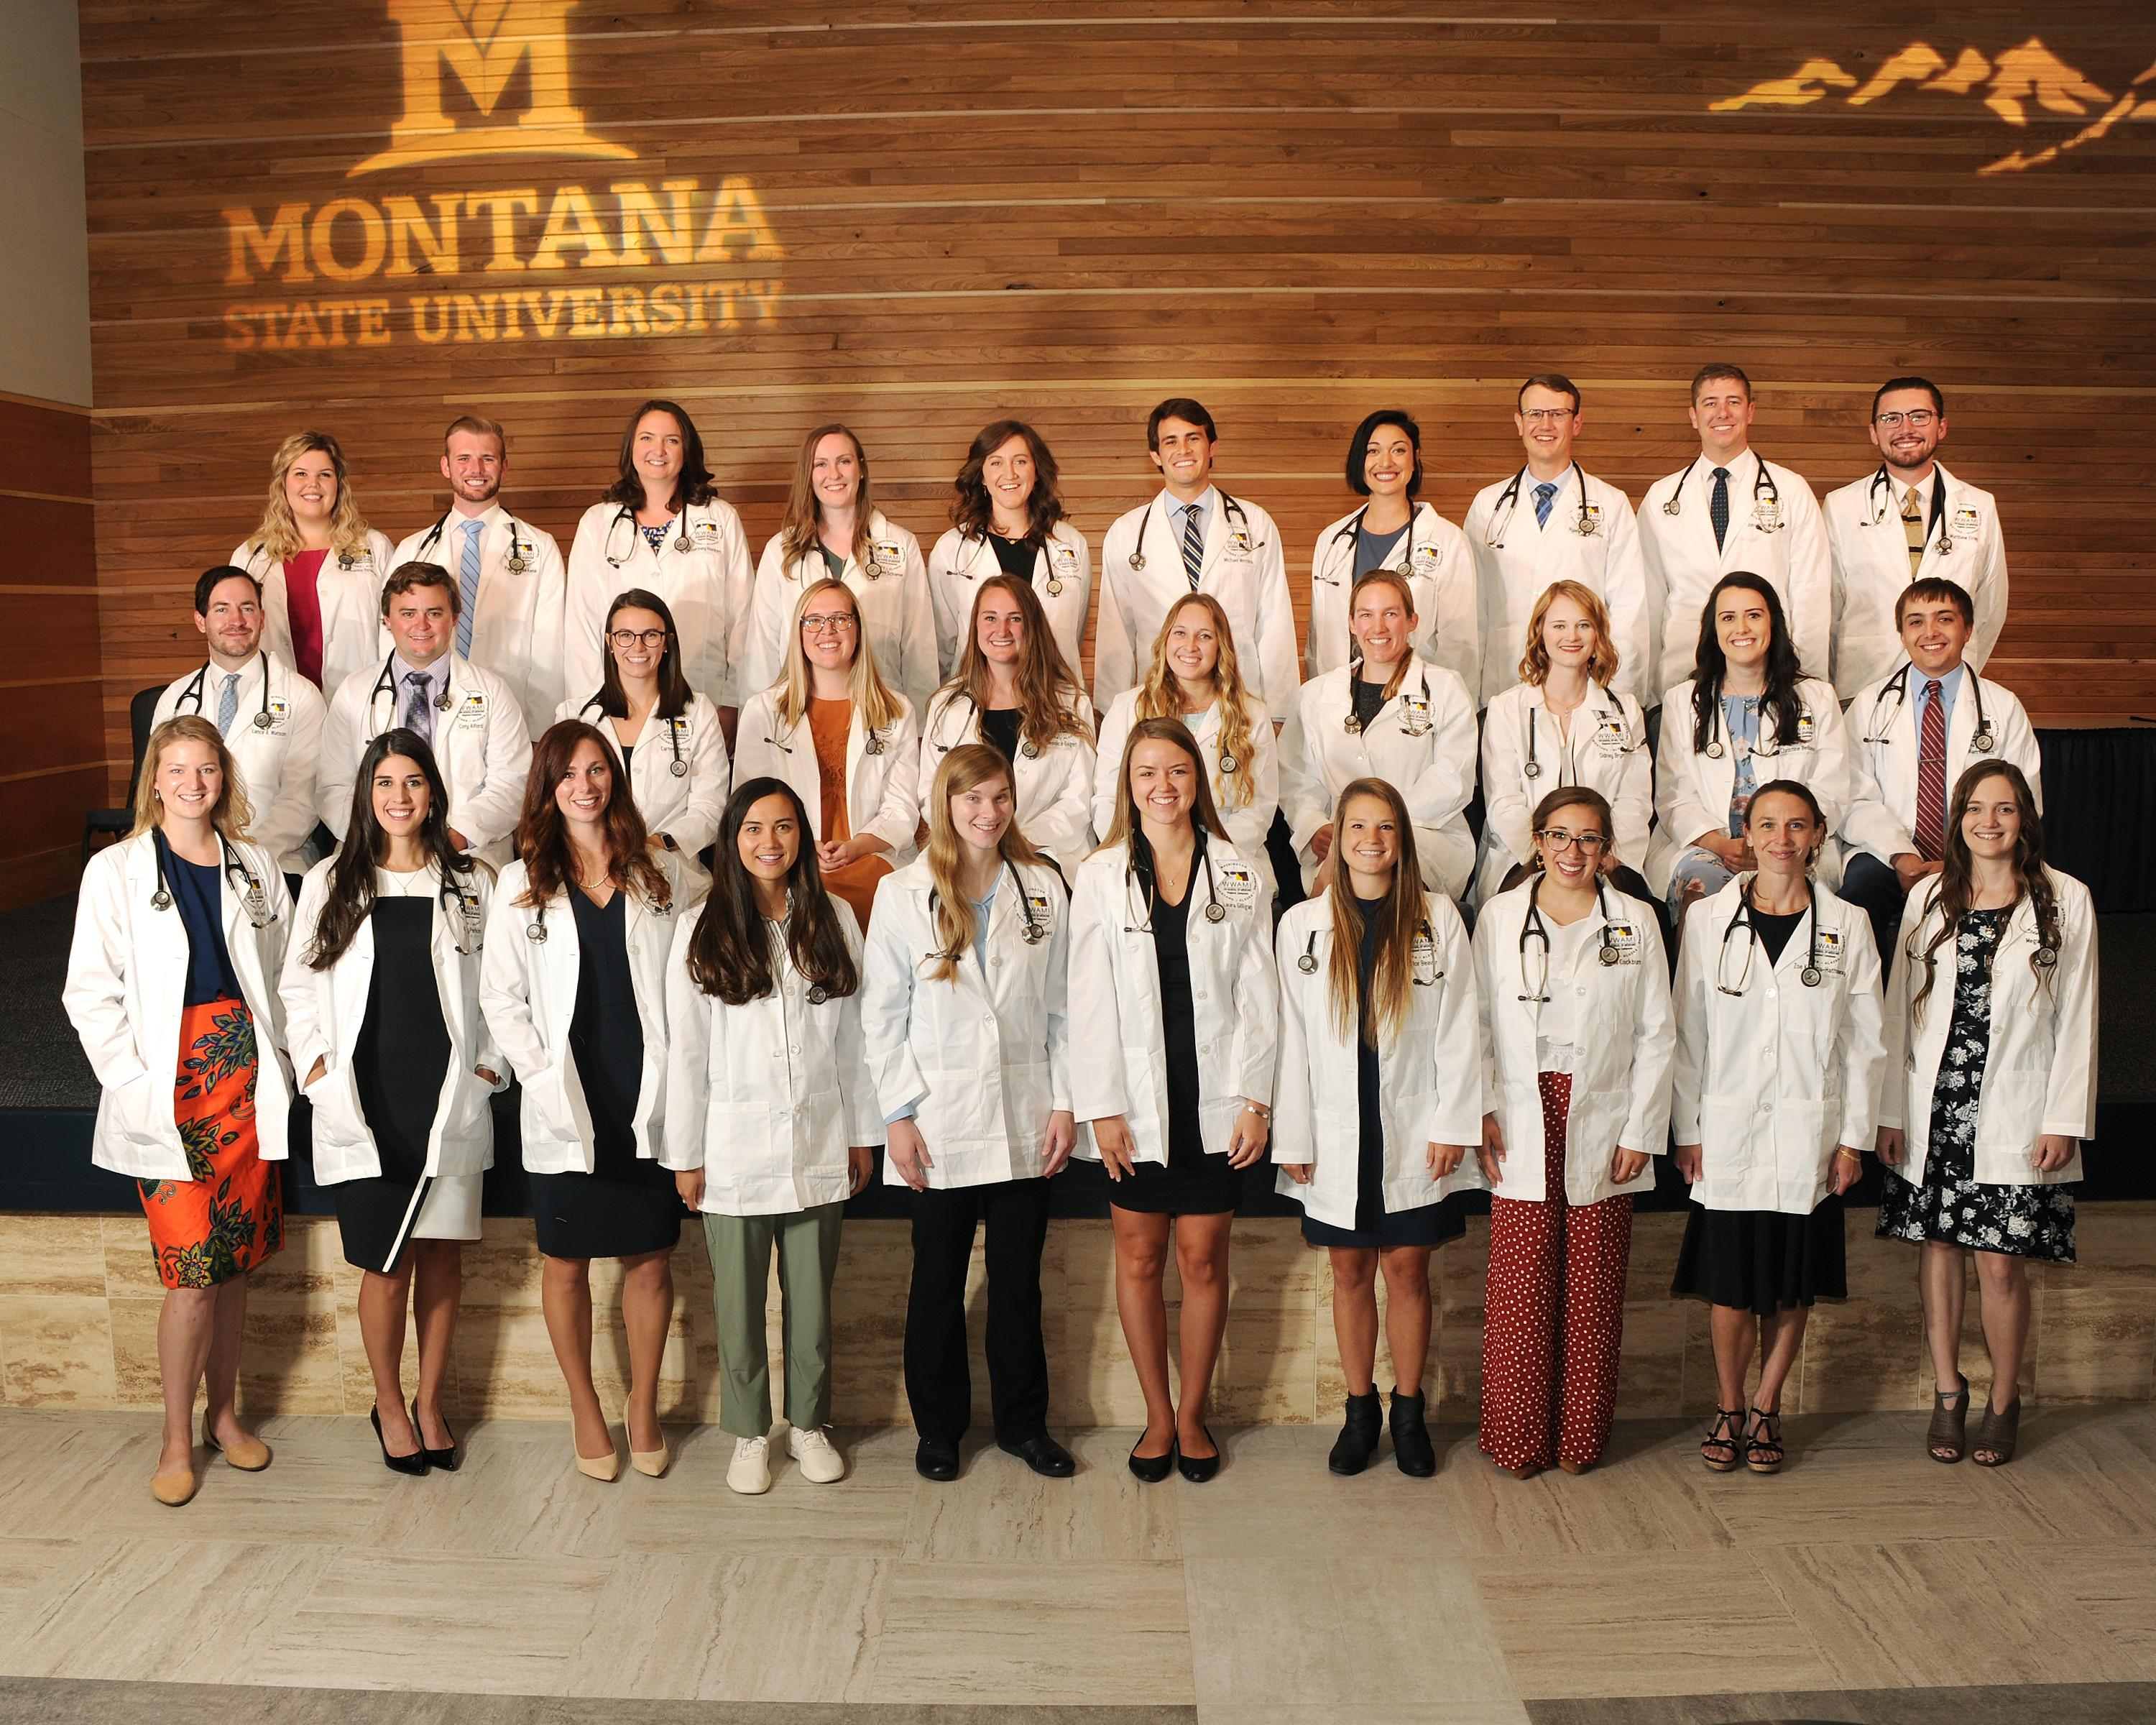 The E19 Students received their White Coats on August 30, 2019 after completing Immersion and Orientation.